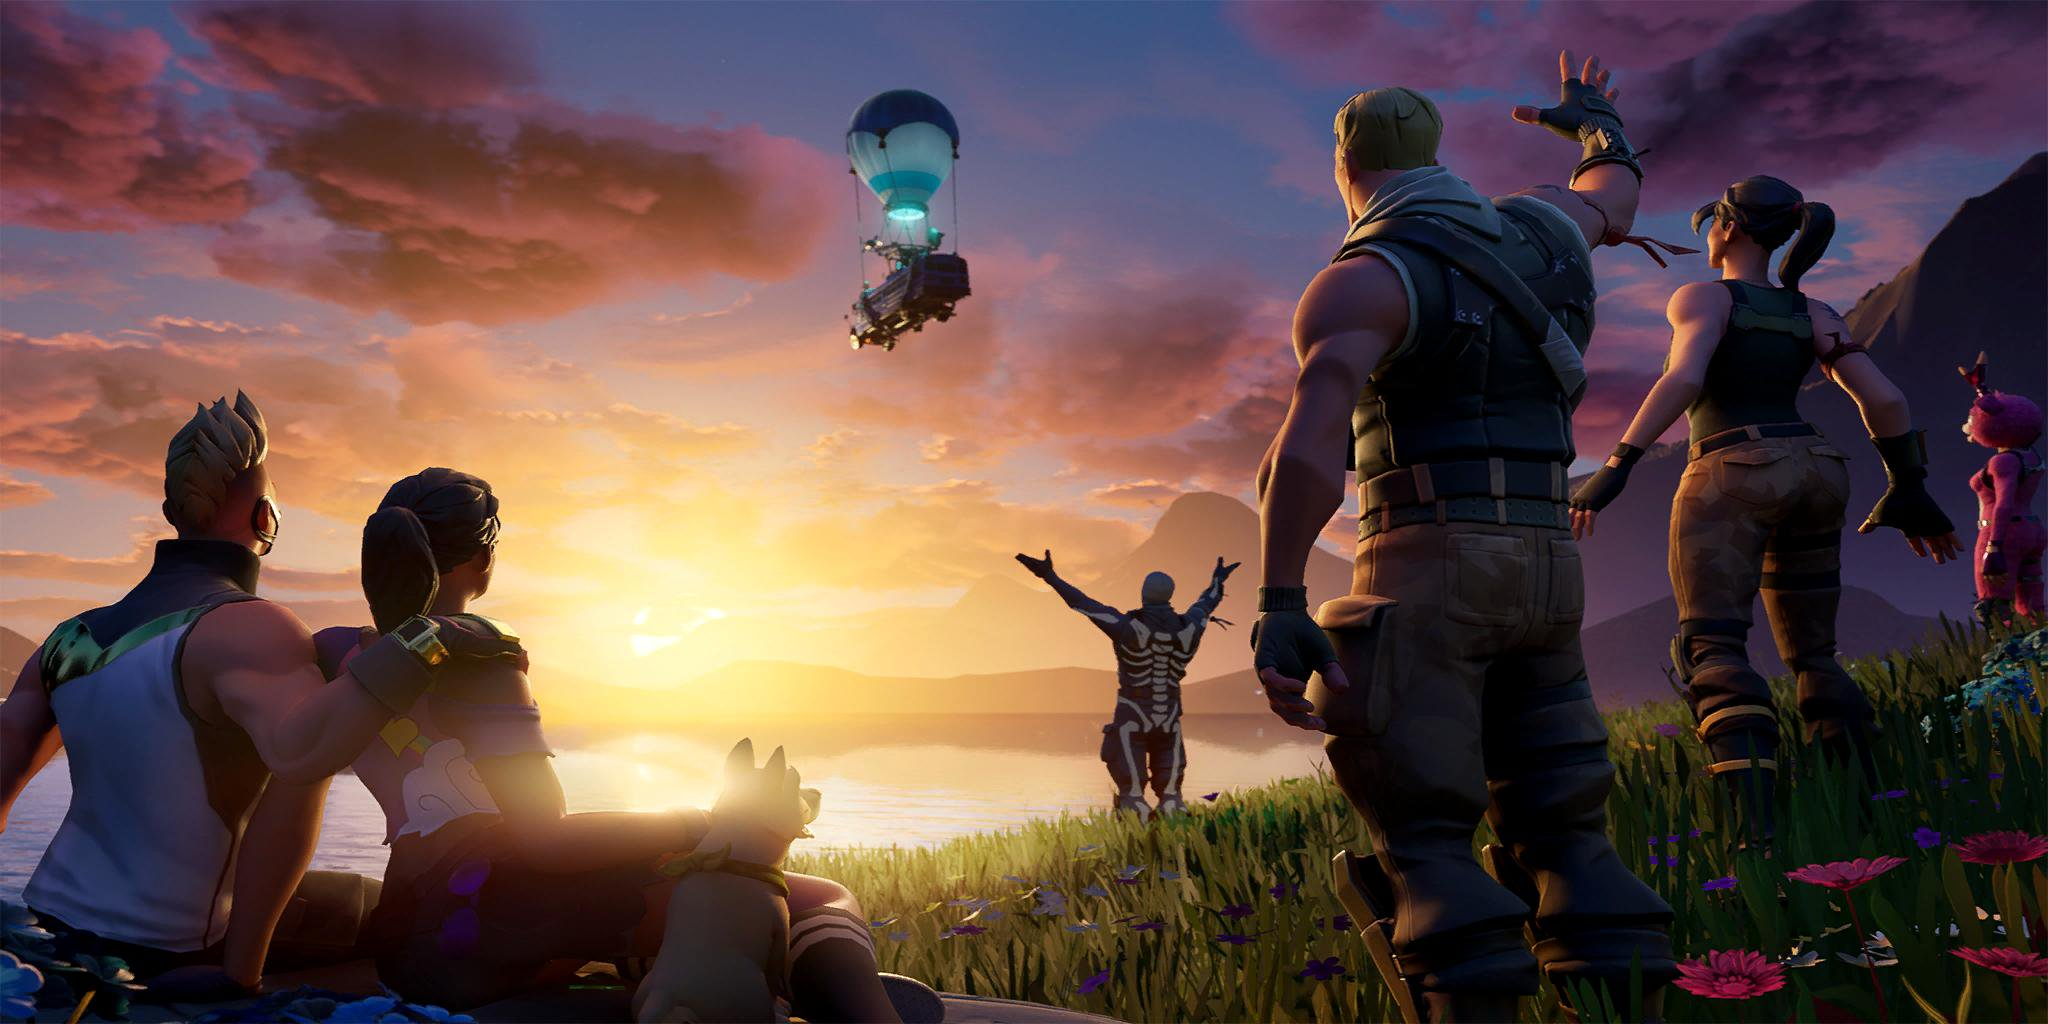 Fortnite Season 10 Week 10 Leaked The End Loading Screen